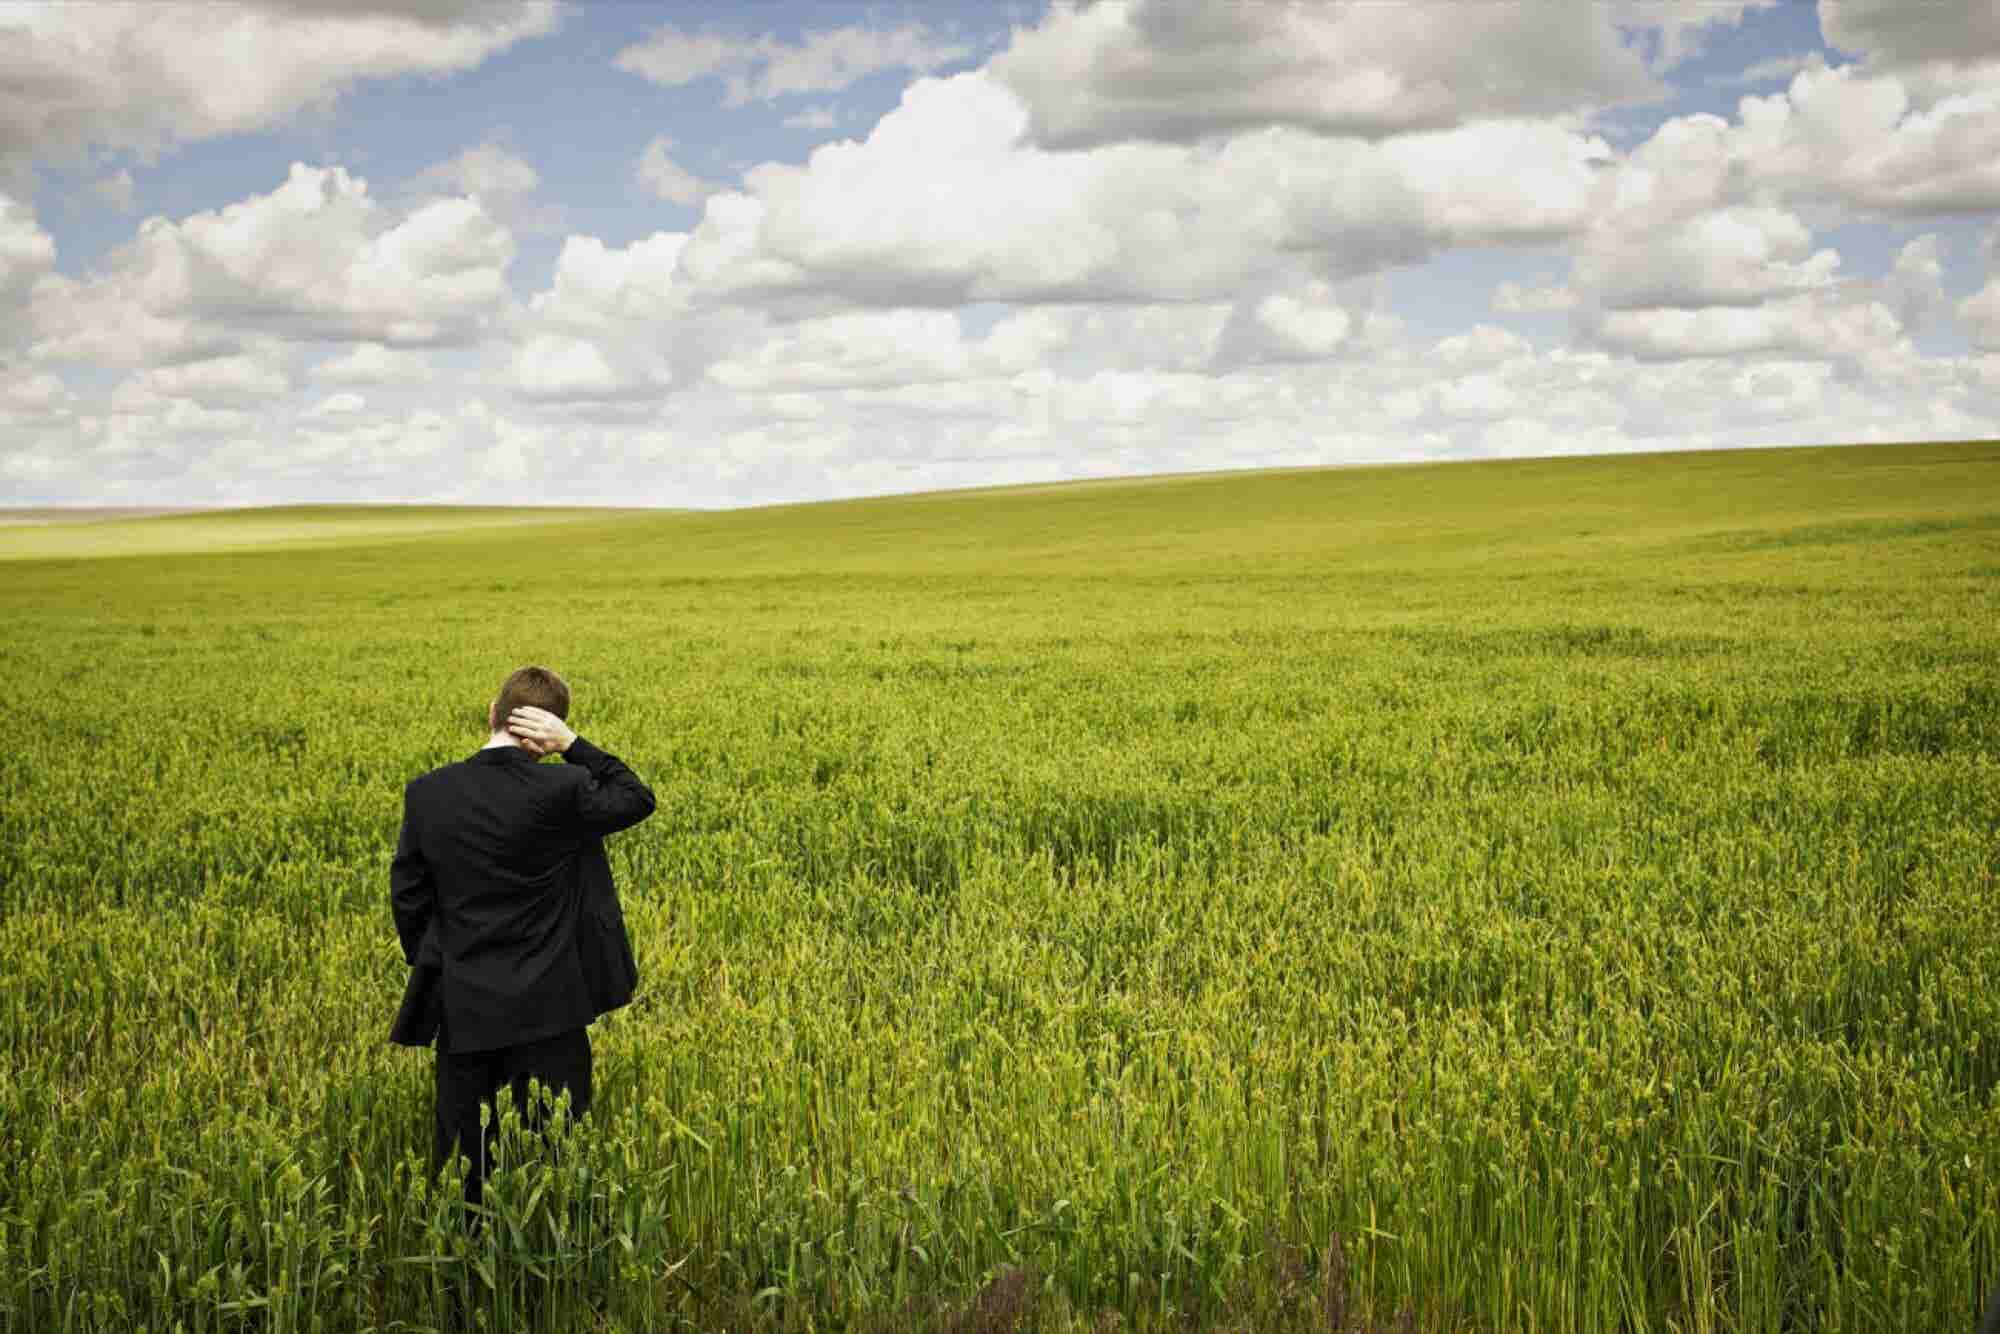 Thinking of Pursuing Greener Pastures? 3 Questions Entrepreneurs Should Ask Themselves Before Taking That Plunge